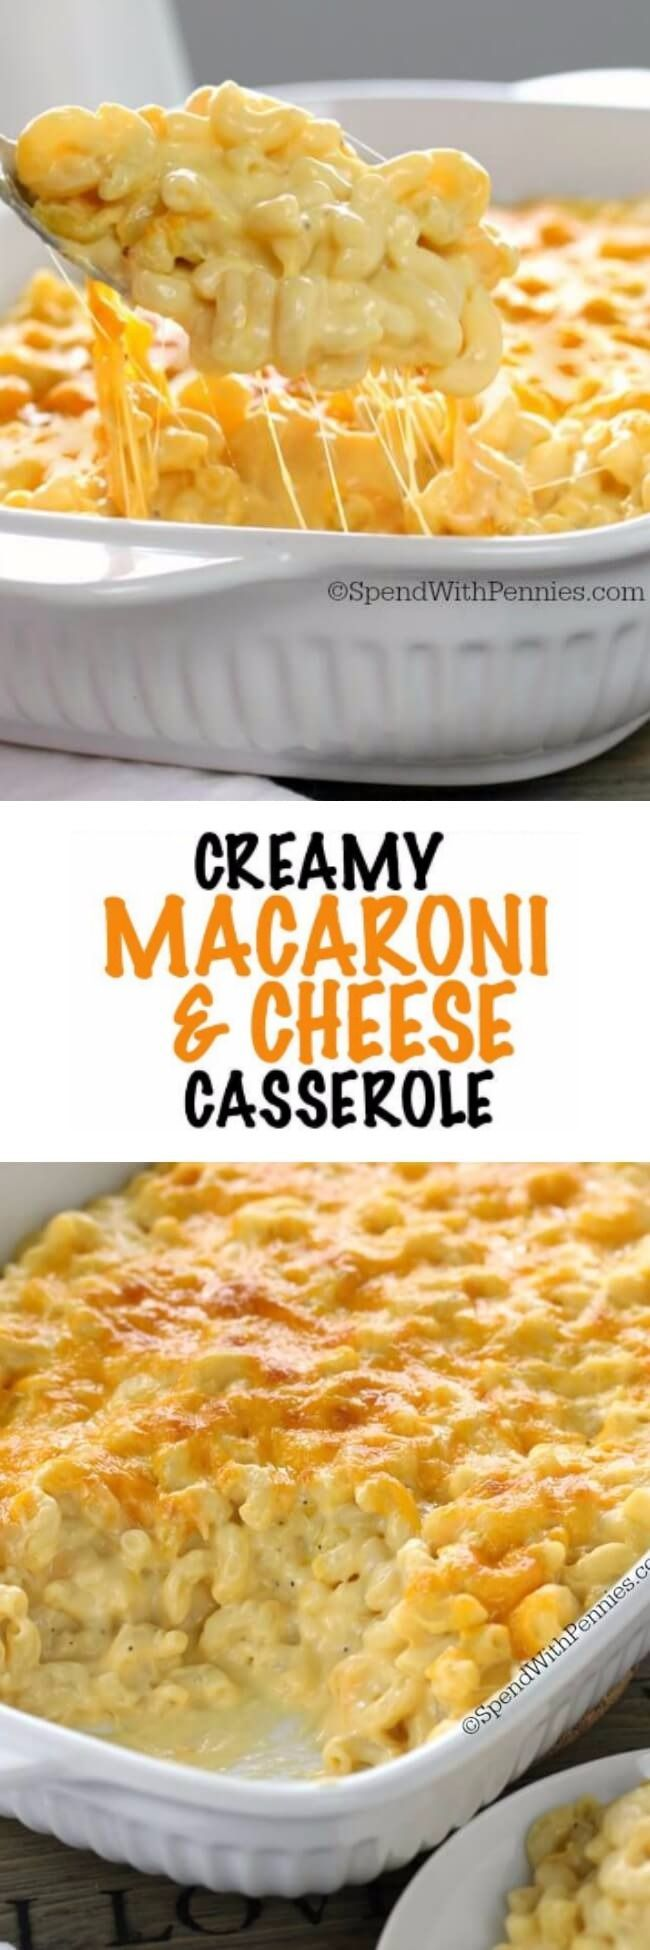 Bad- Again, macaroni and cheese is hard to photograph, and both photos look the same.